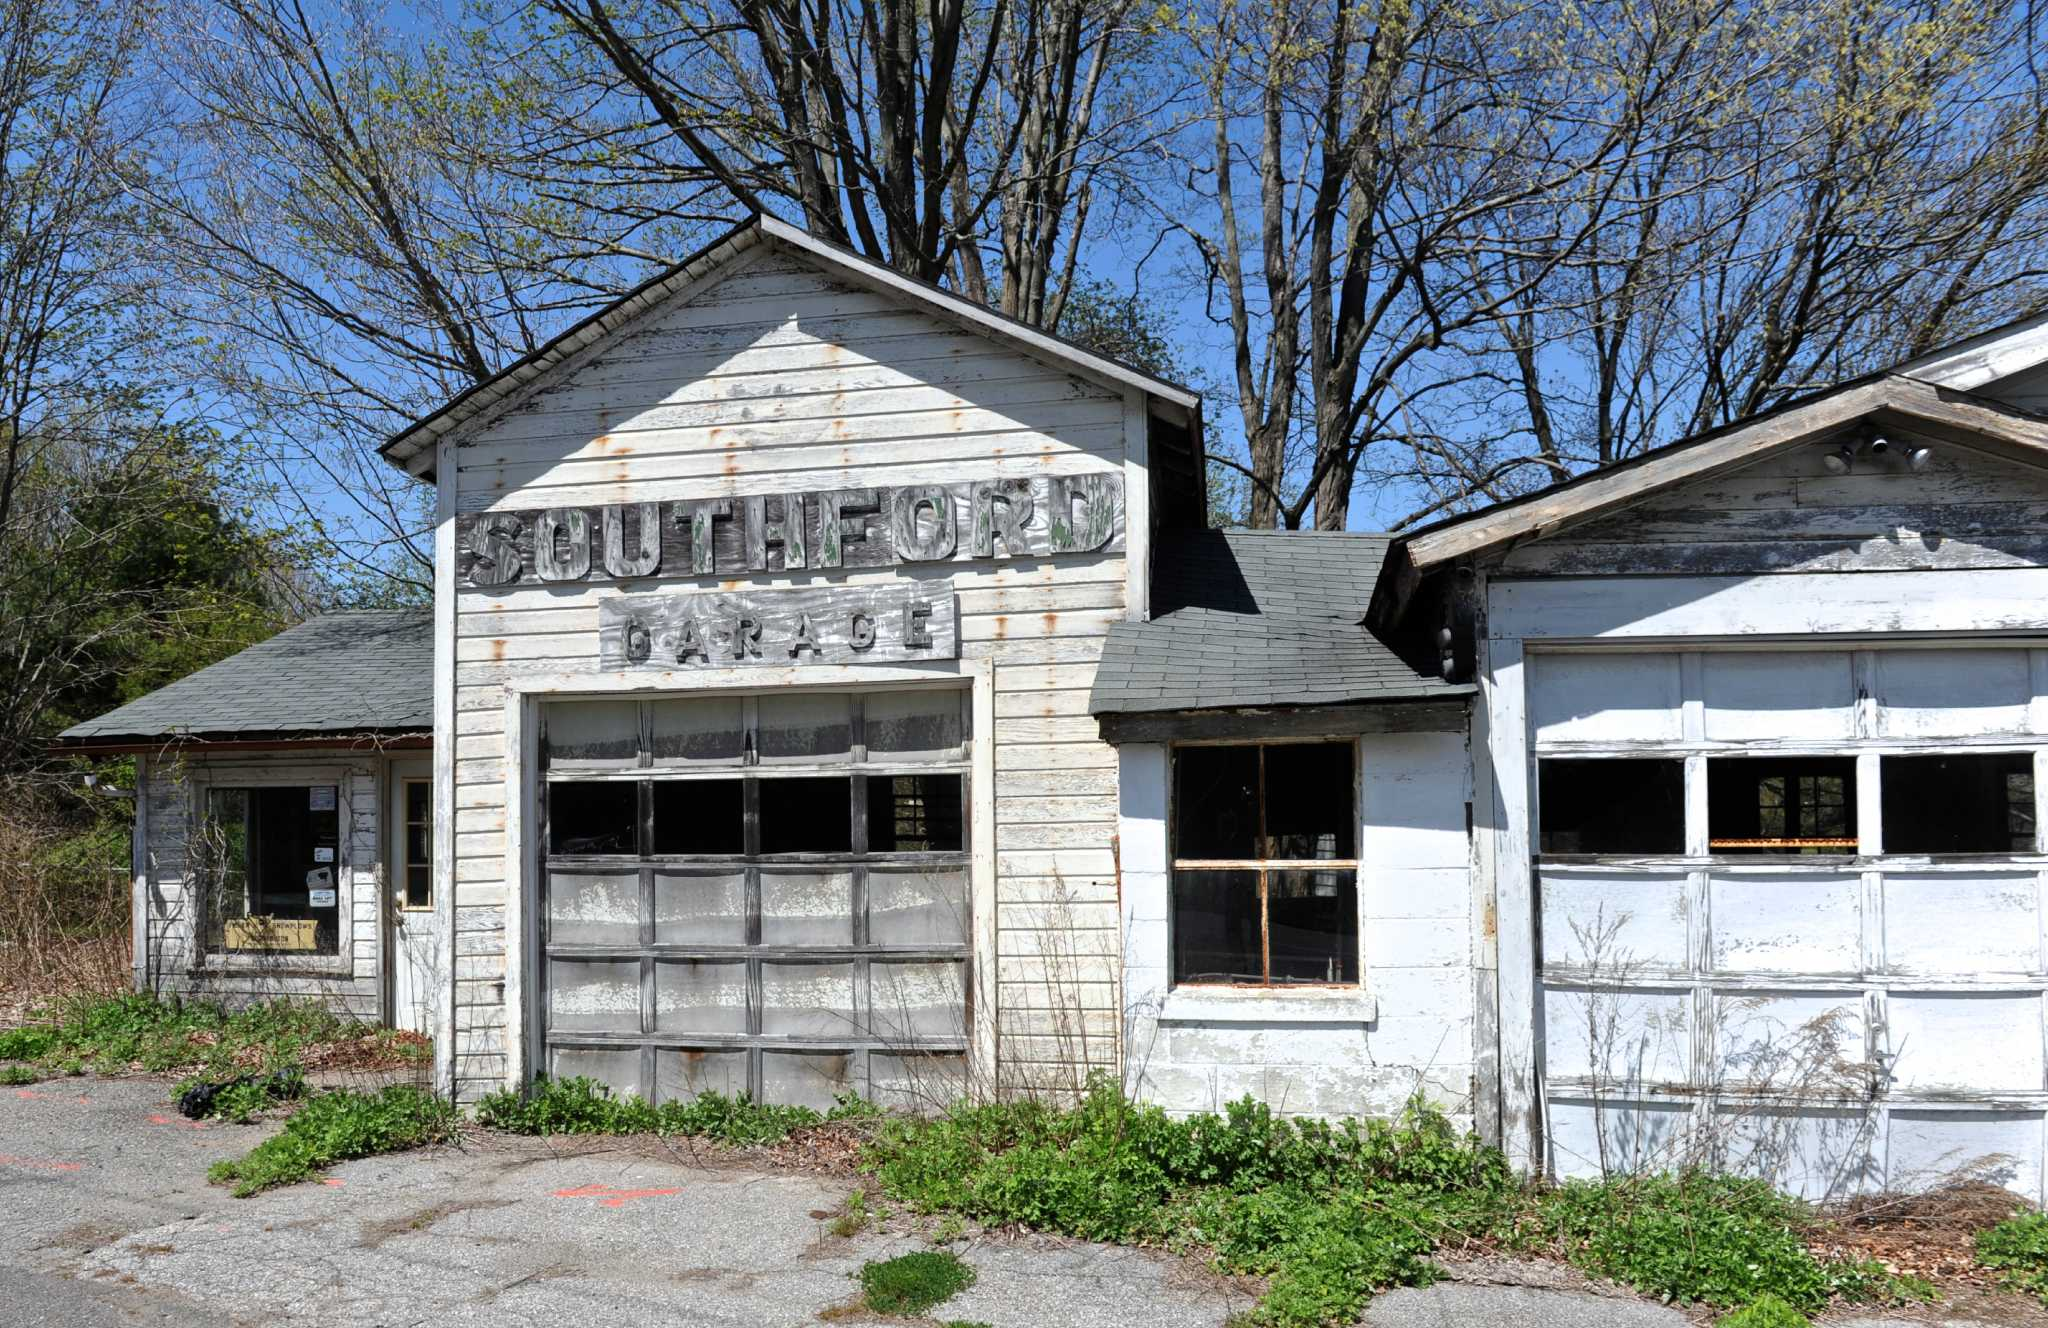 Southbury garden center could make way for gas station - NewsTimes